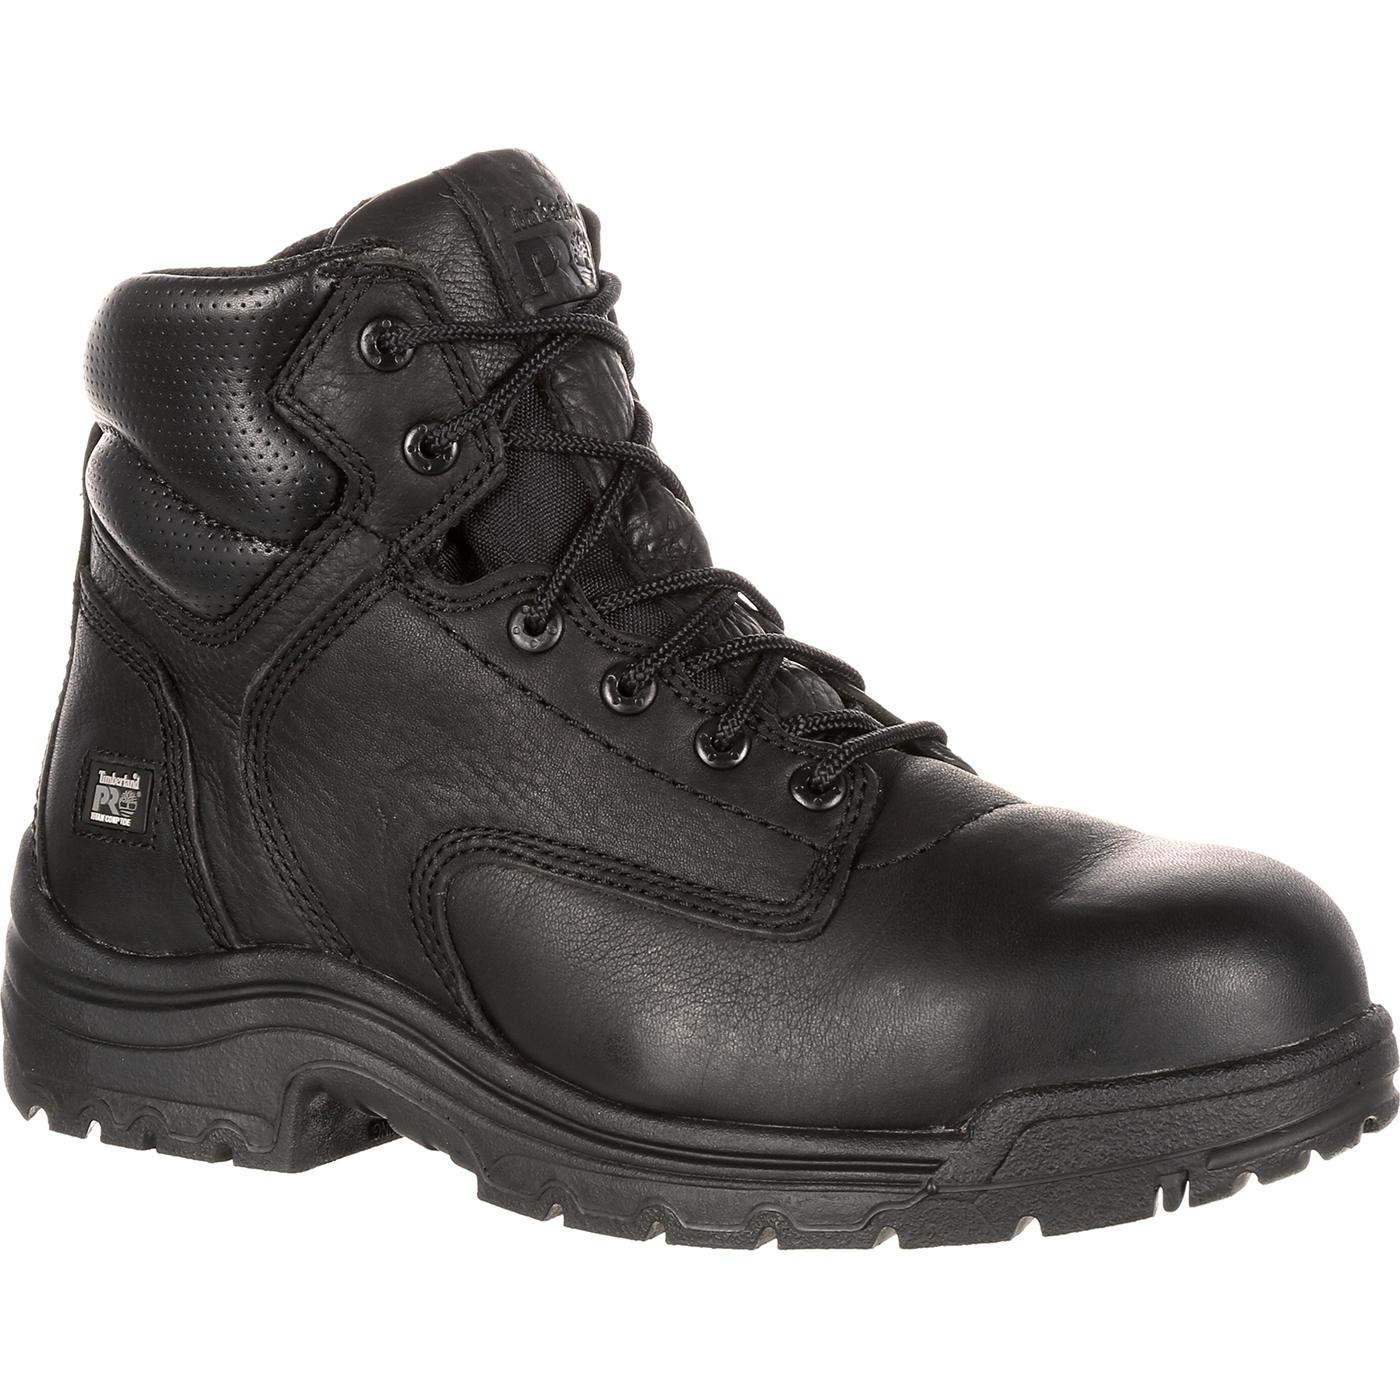 save off store wide selection of colours and designs Timberland Pro Titan Composite Toe Work Boots